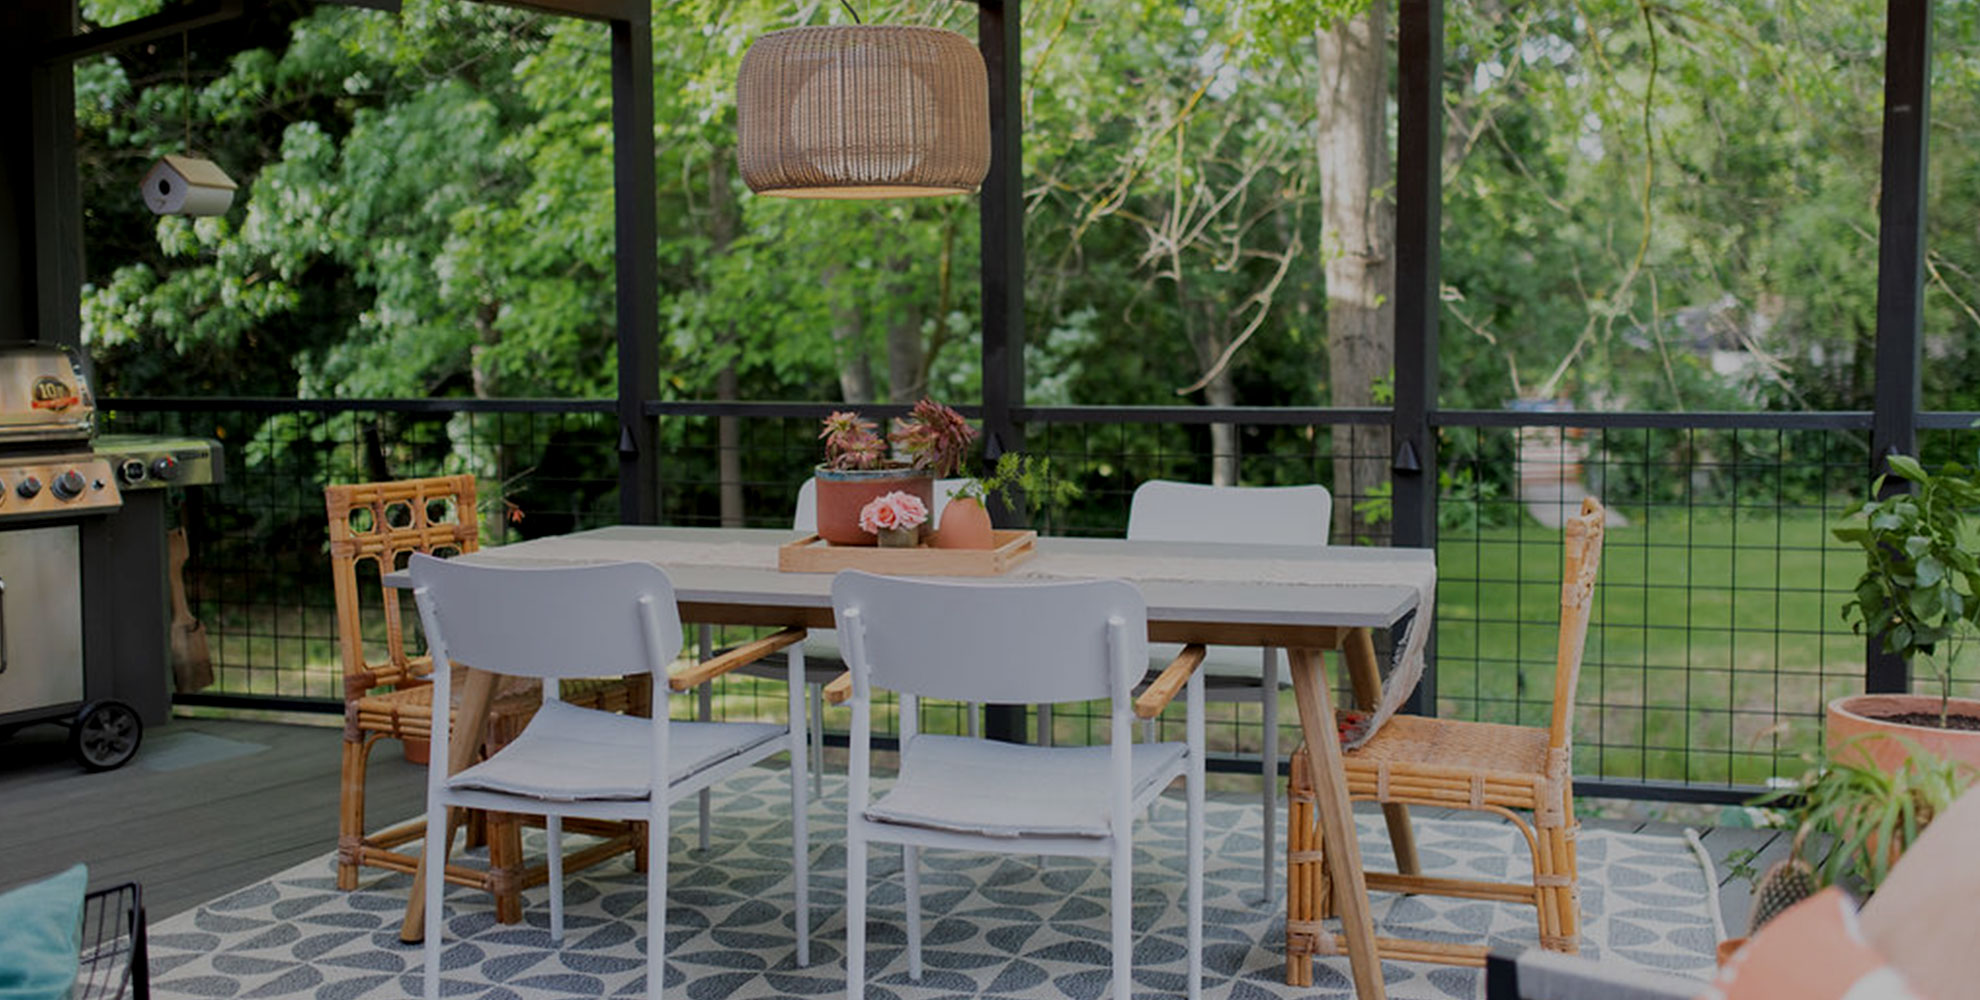 How to Create an Entertainment-Friendly Outdoor Space